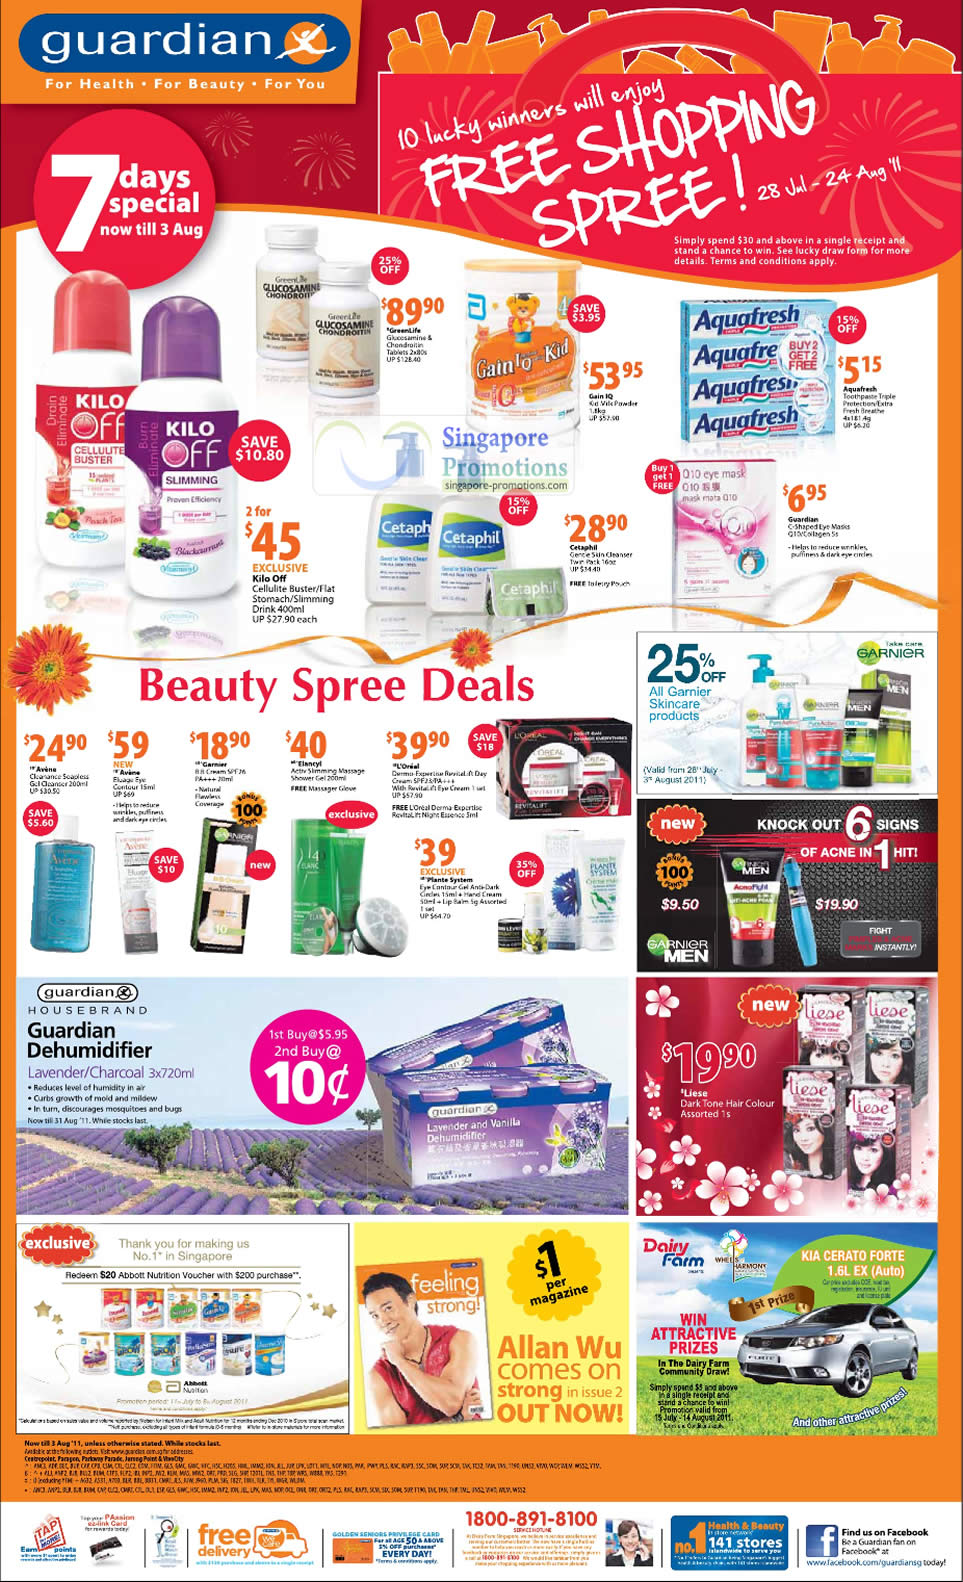 7 Day Specials, GreenLife, Kilo Off Cellulite Buster, Gain IQ, Cetaphil, Avlene, Garnier, LOreal, Liese